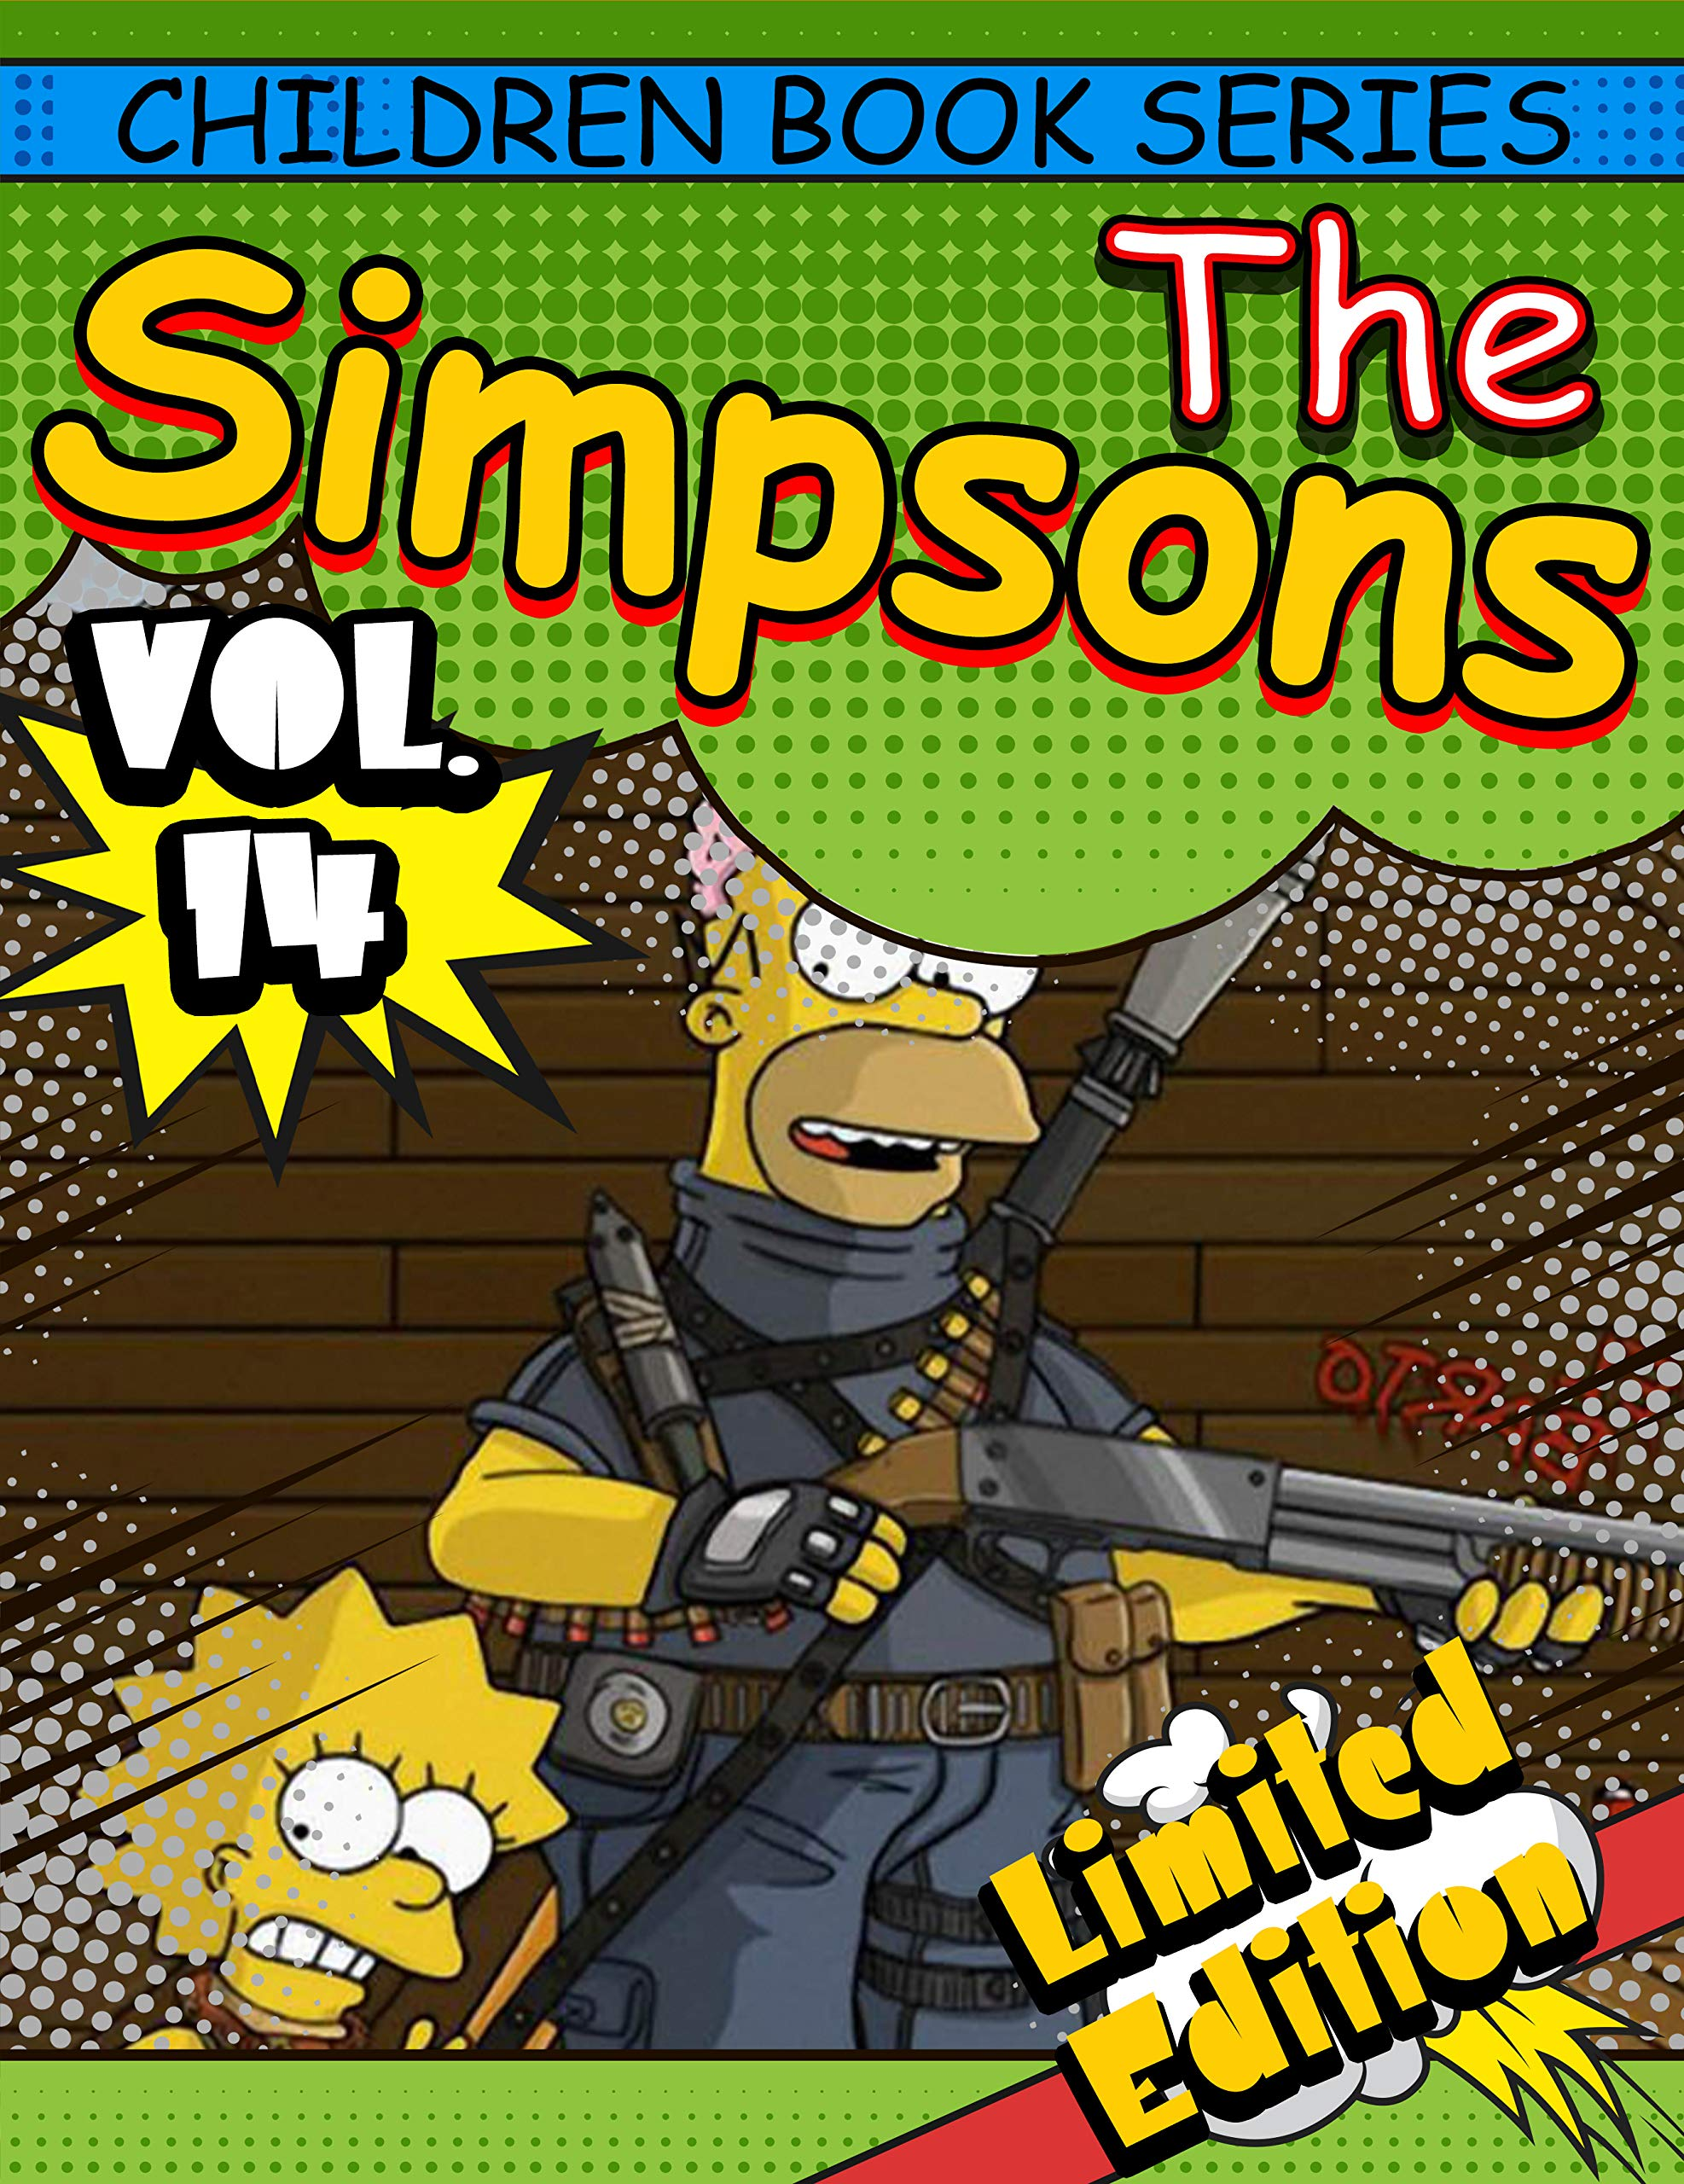 Children book series The Simpsons Limited Edition: Funny The Simpsons Completed Series Vol 14